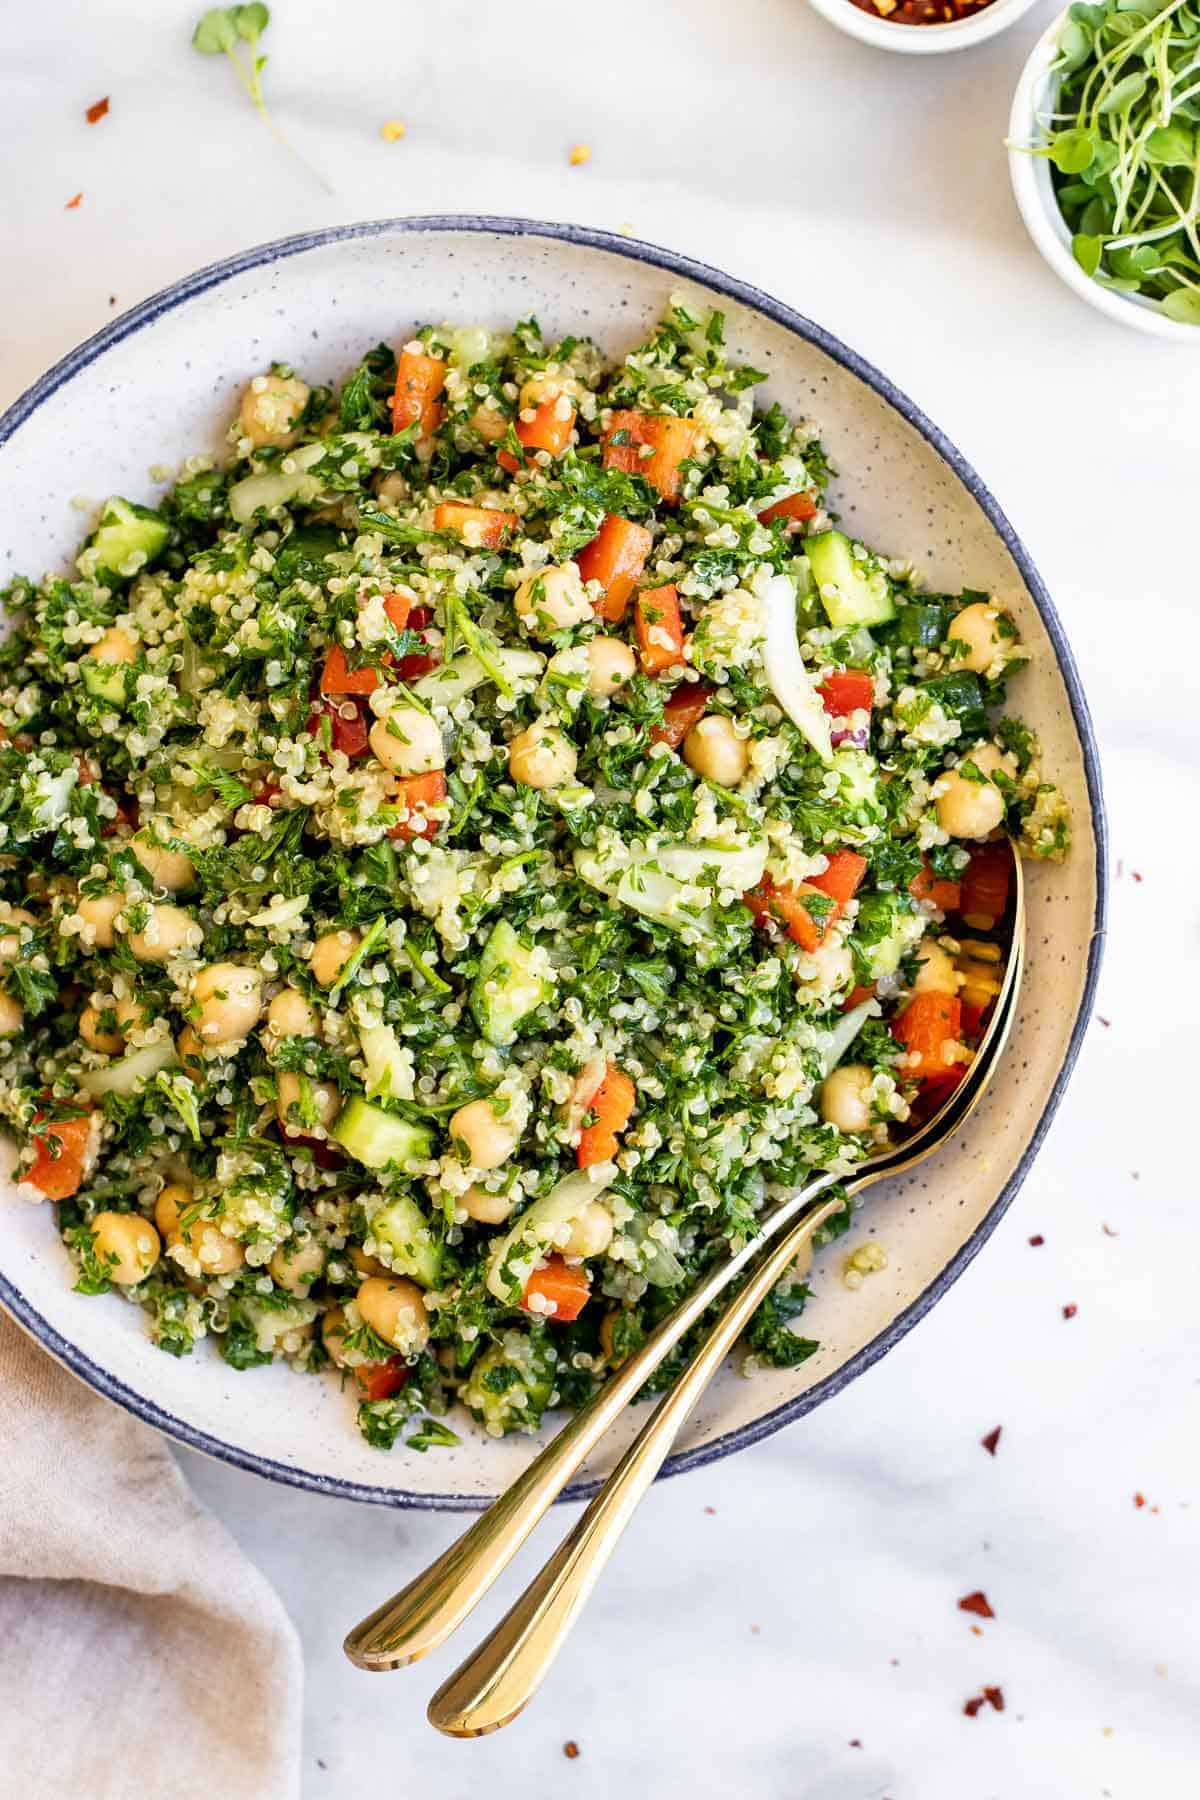 Overhead shot of the quinoa tabbouleh salad recipe with fresh parsley in a blue bowl.